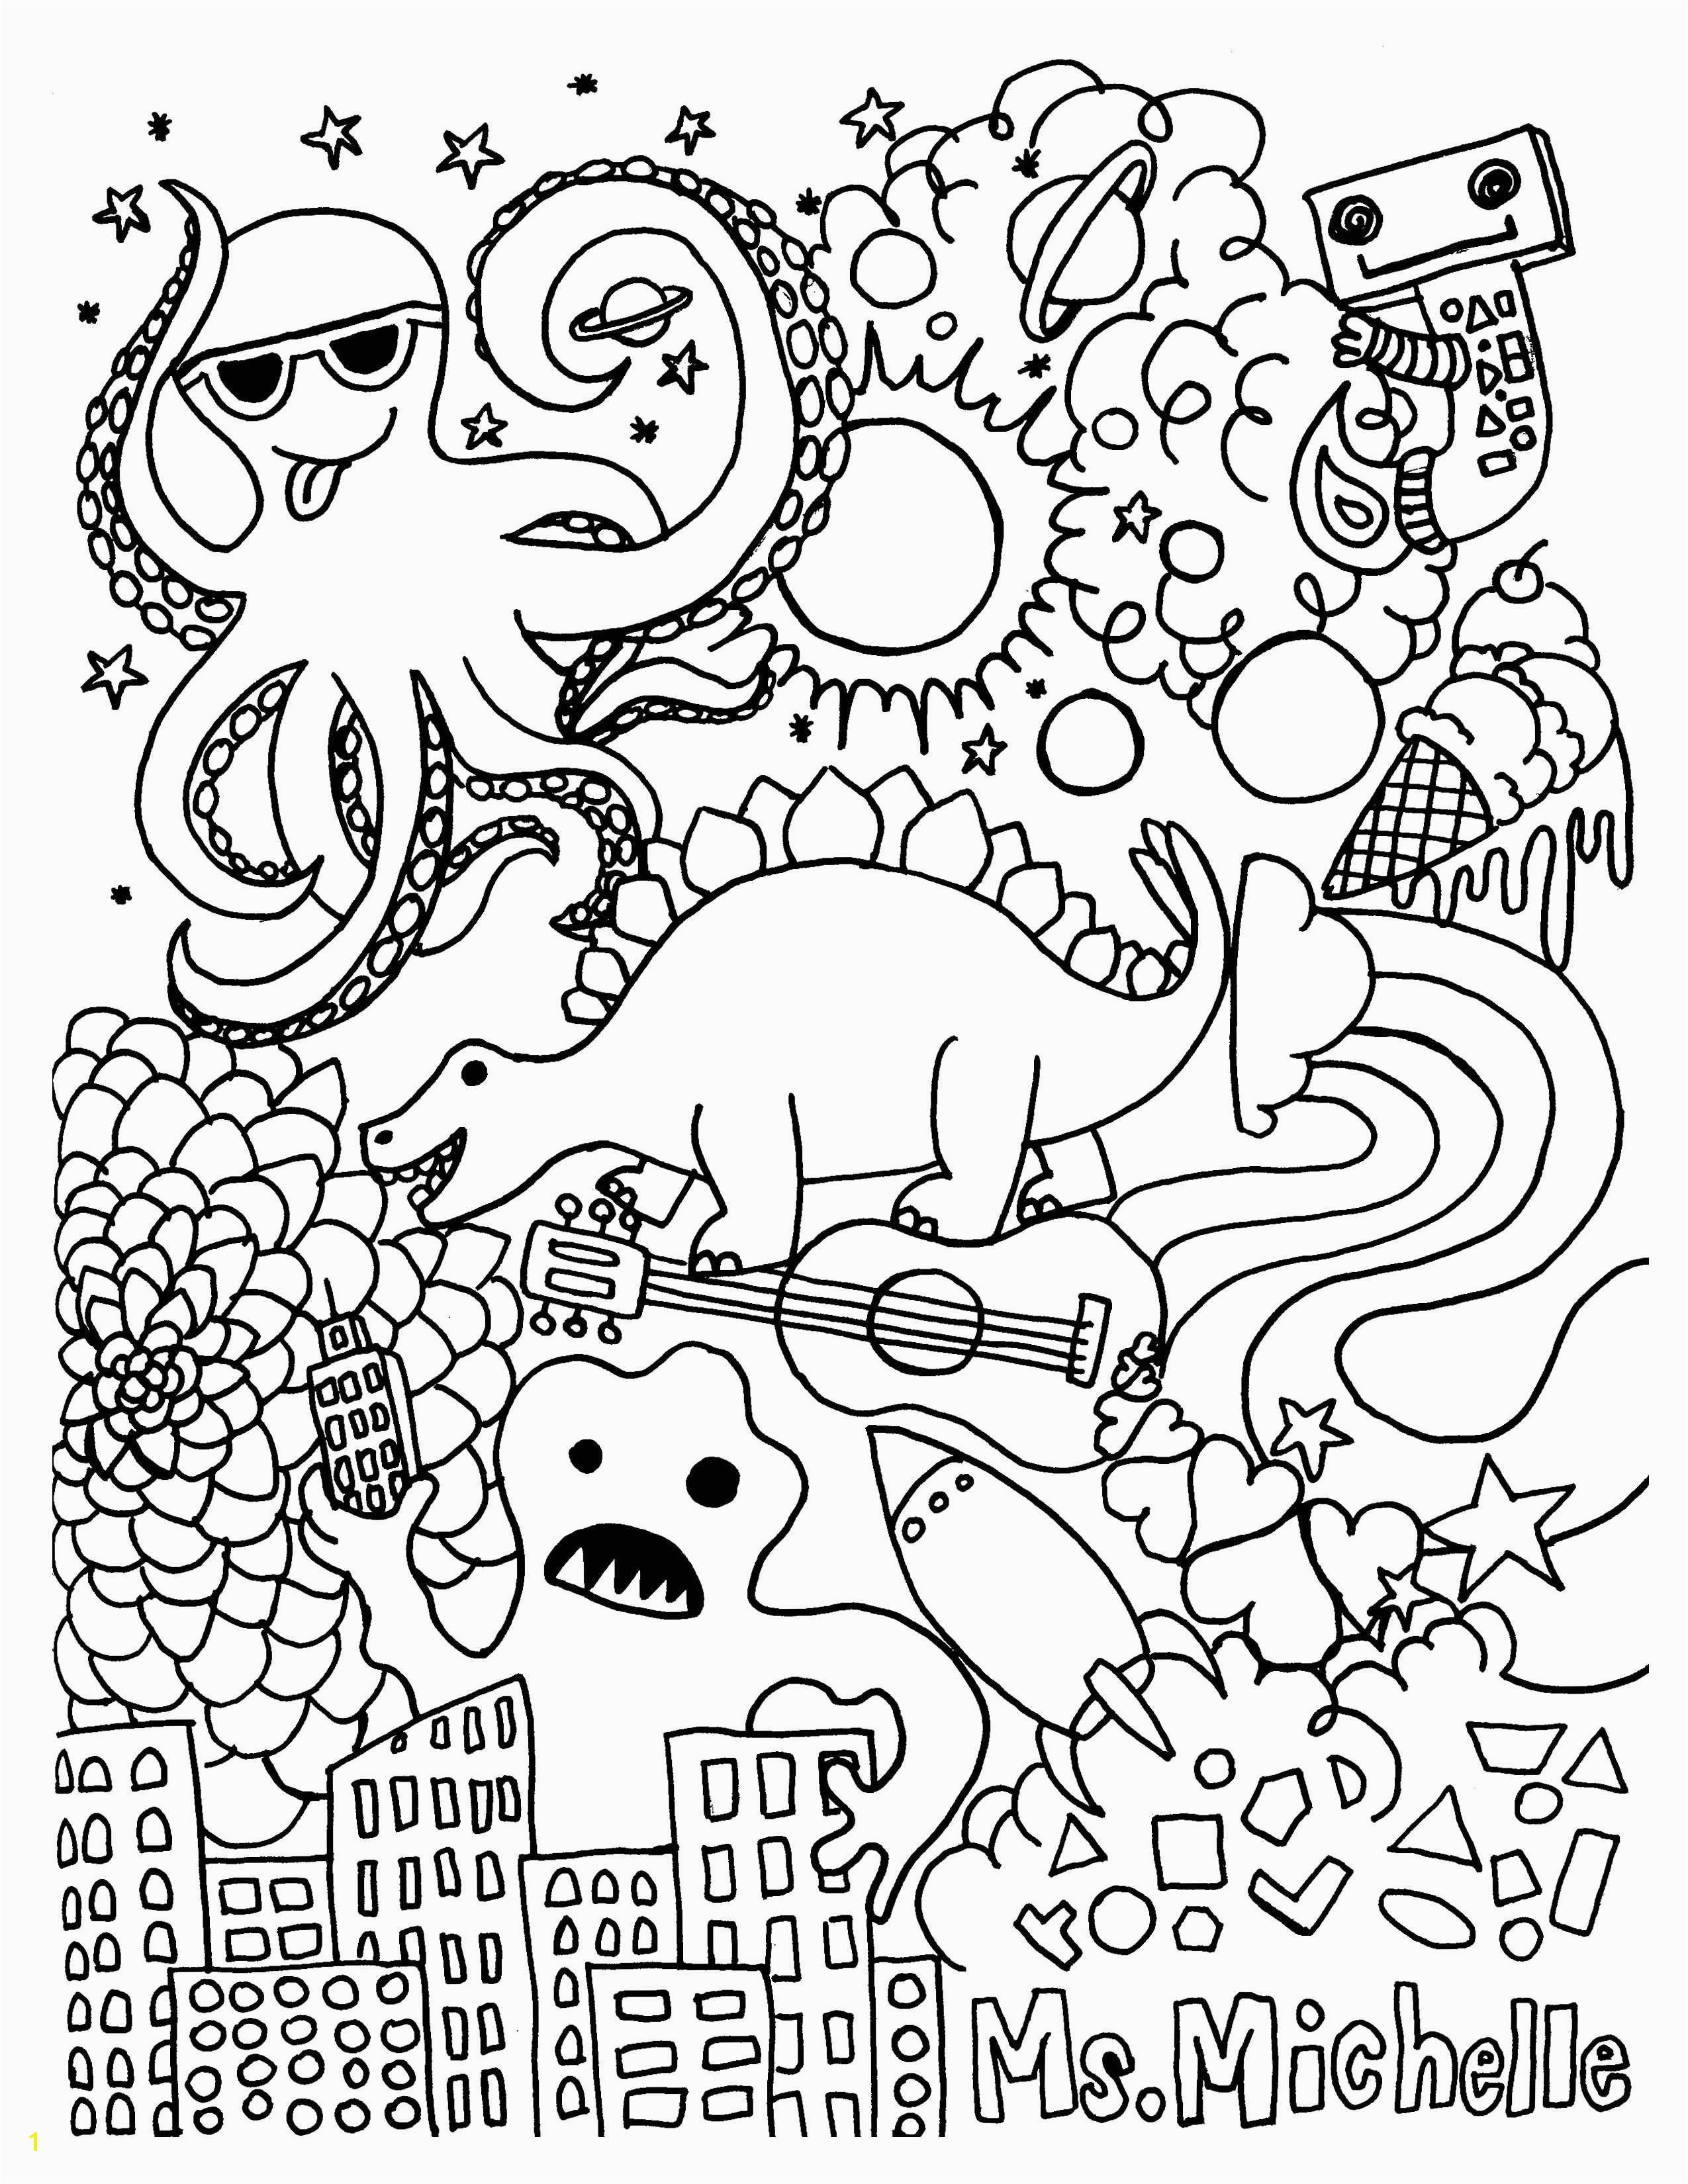 Sunday School Coloring Pages Free Sunday School Coloring Pages For ...